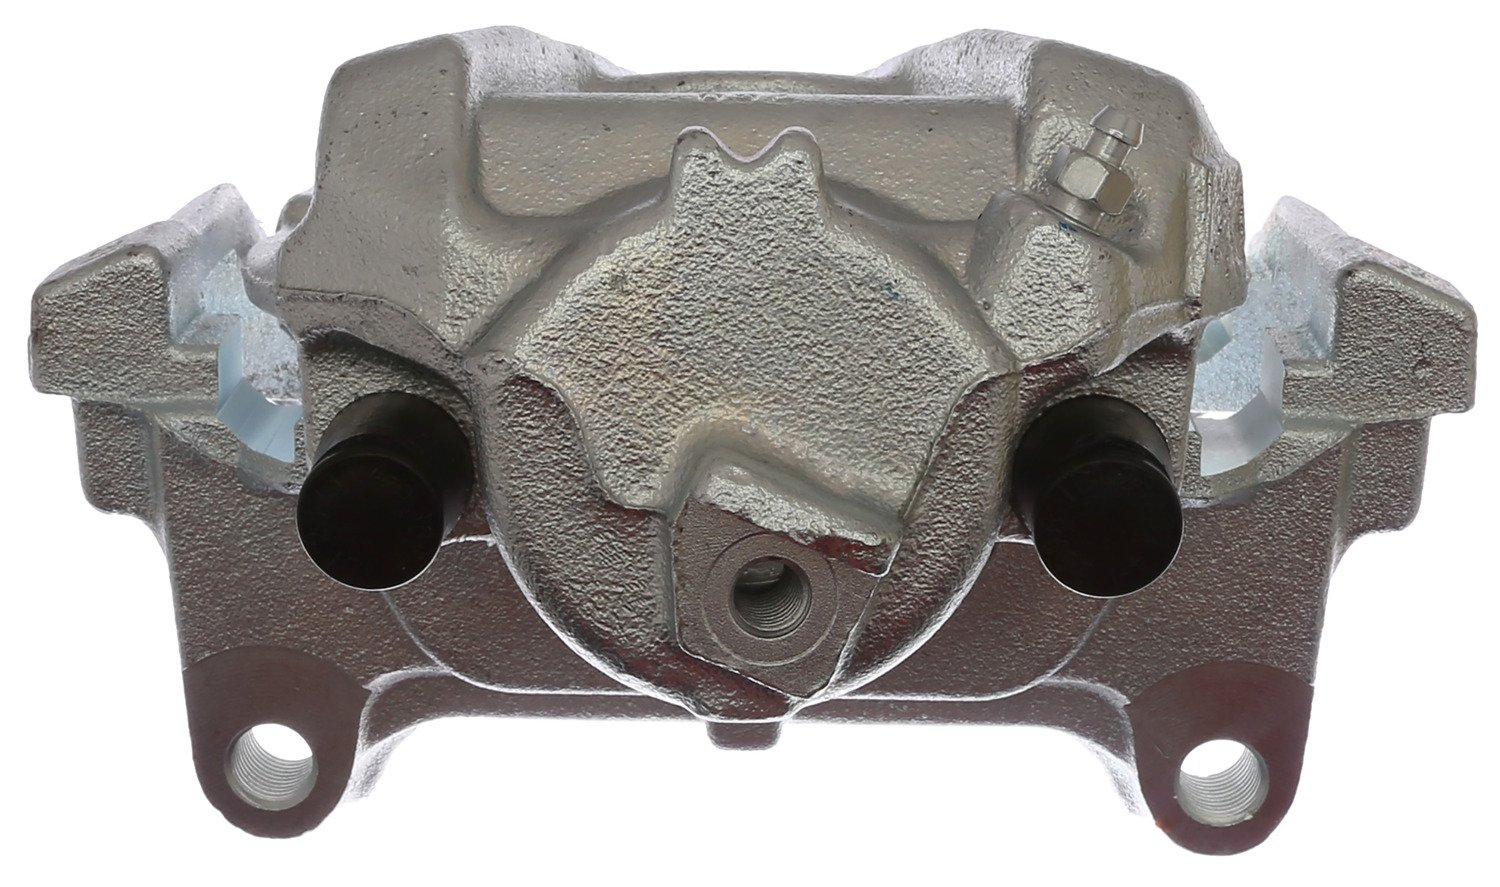 ACDelco 18FR12690C Professional Front Passenger Side Disc Brake Caliper Assembly without Pads (Friction Ready Coated), Remanufactured